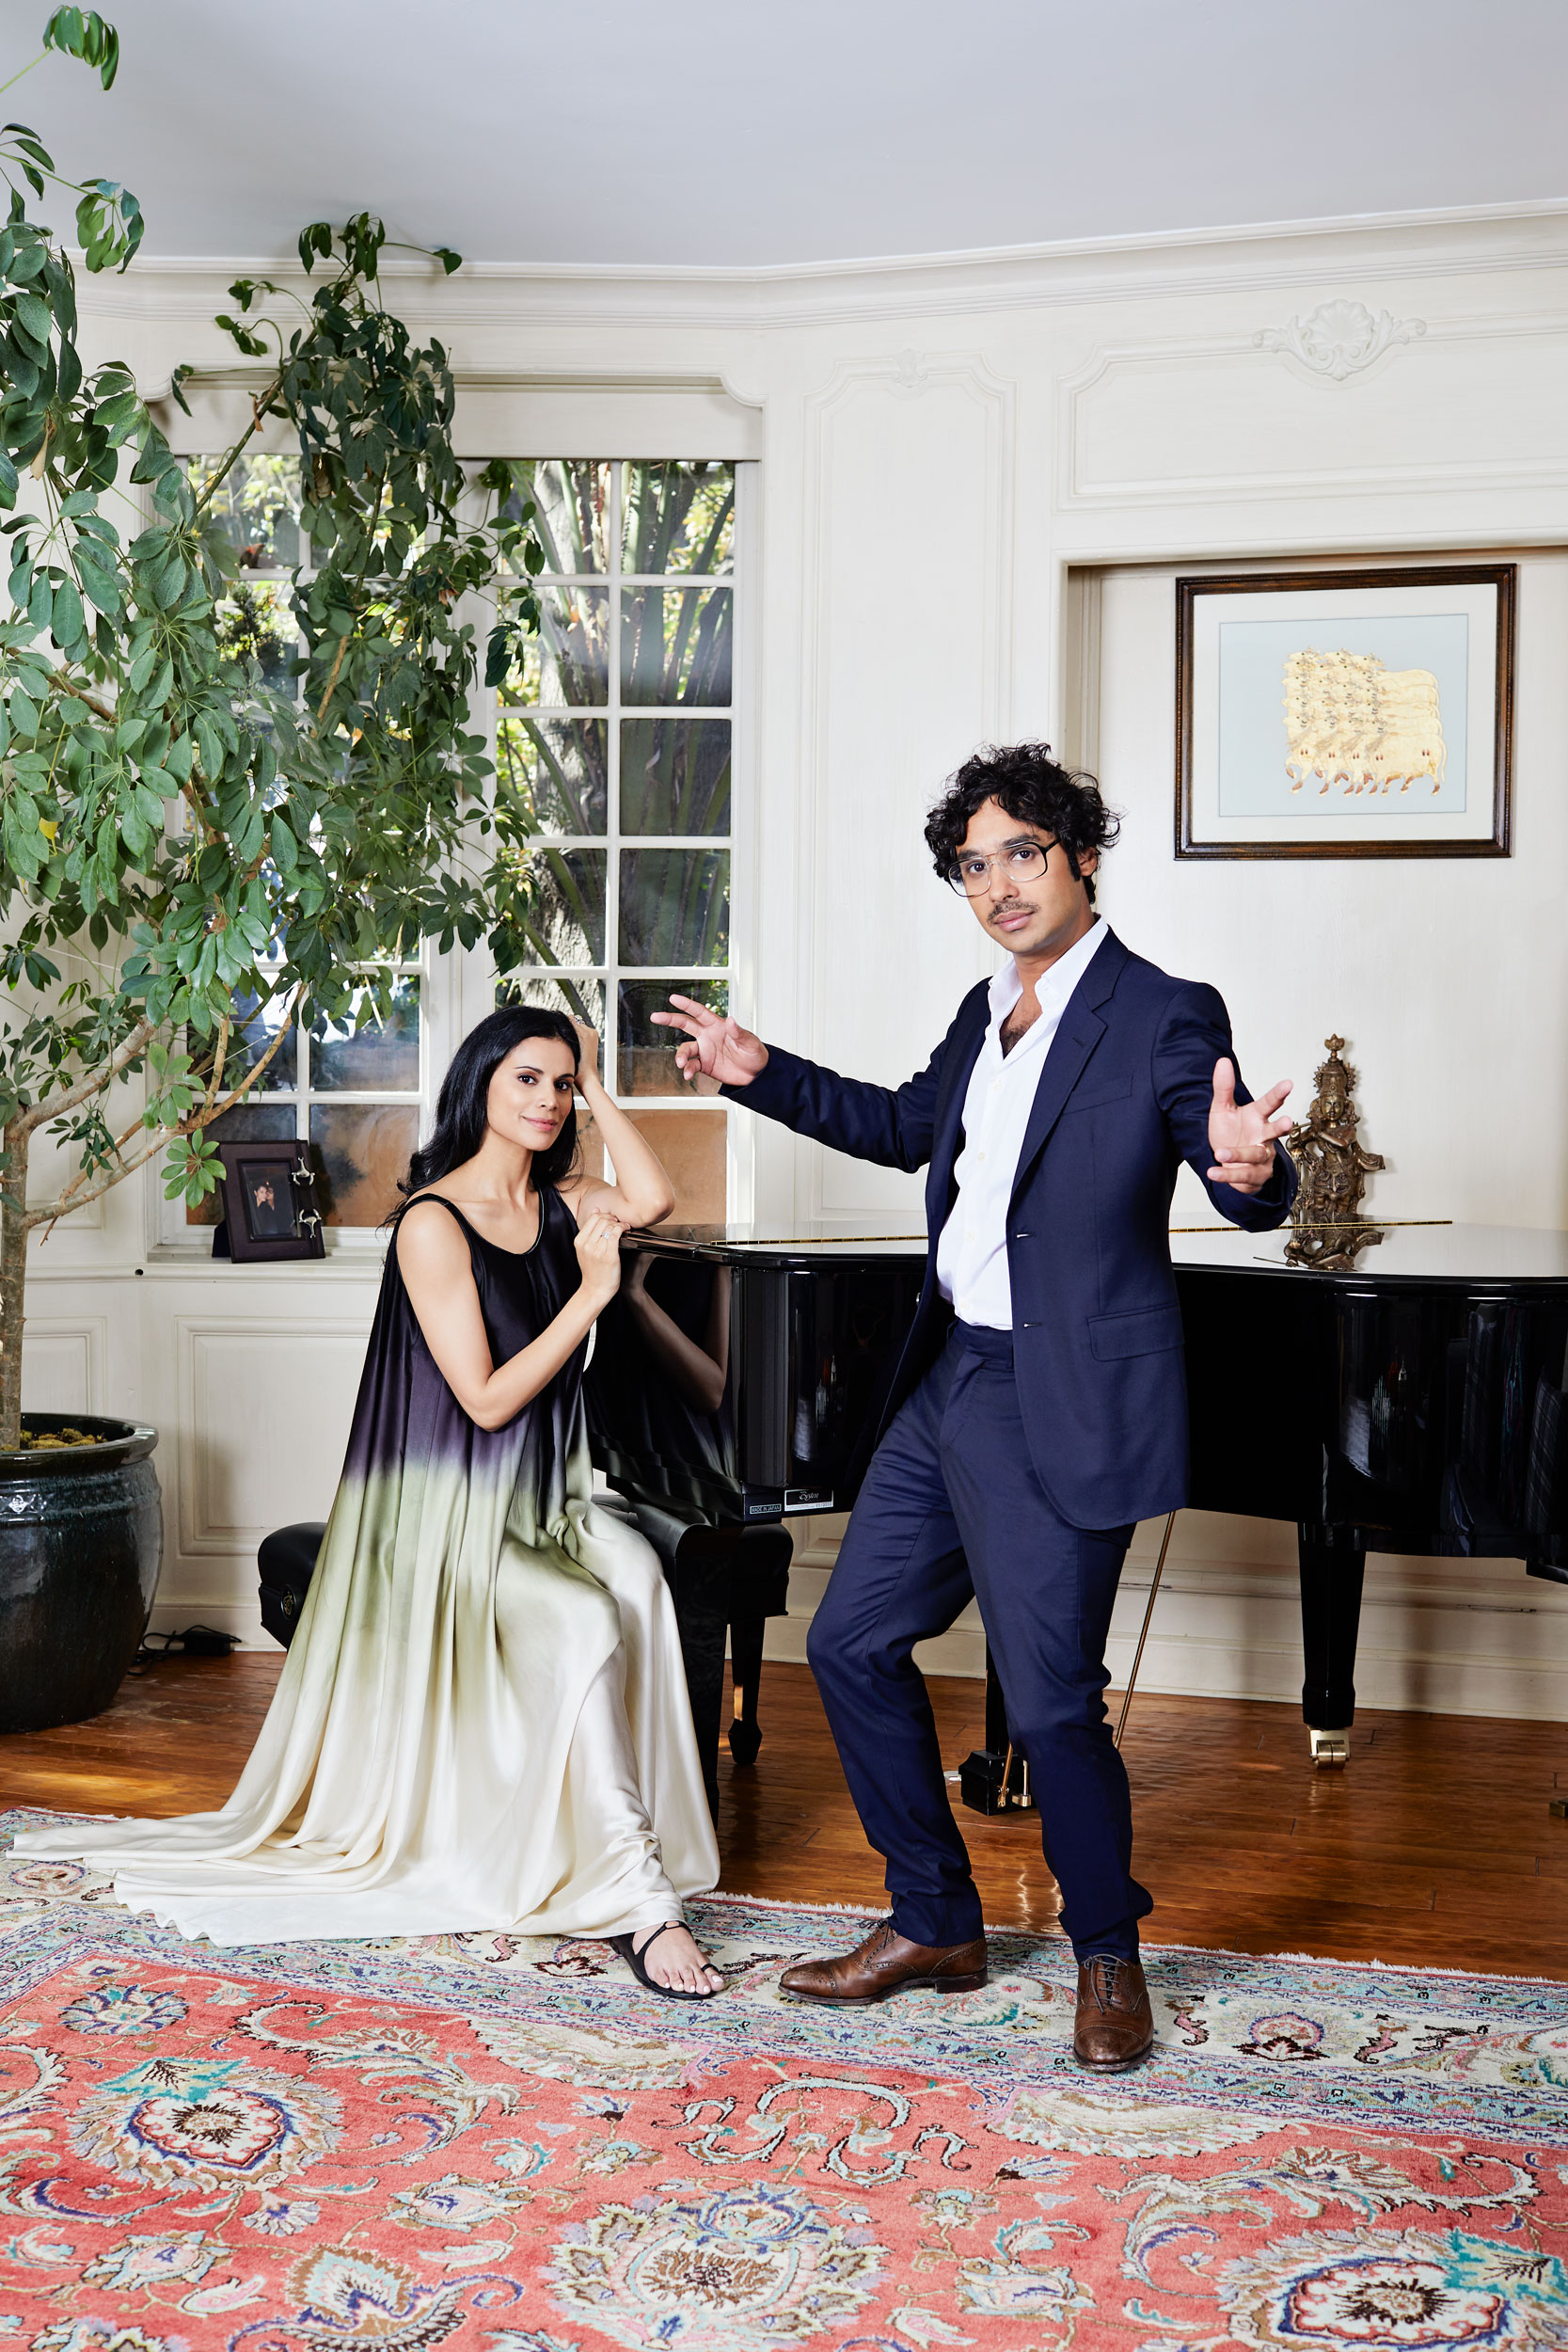 Big Bang Theory Kunal Nayyar and wife Neha Kapur. Kim Genevieve Los Angeles Portrait Photographer